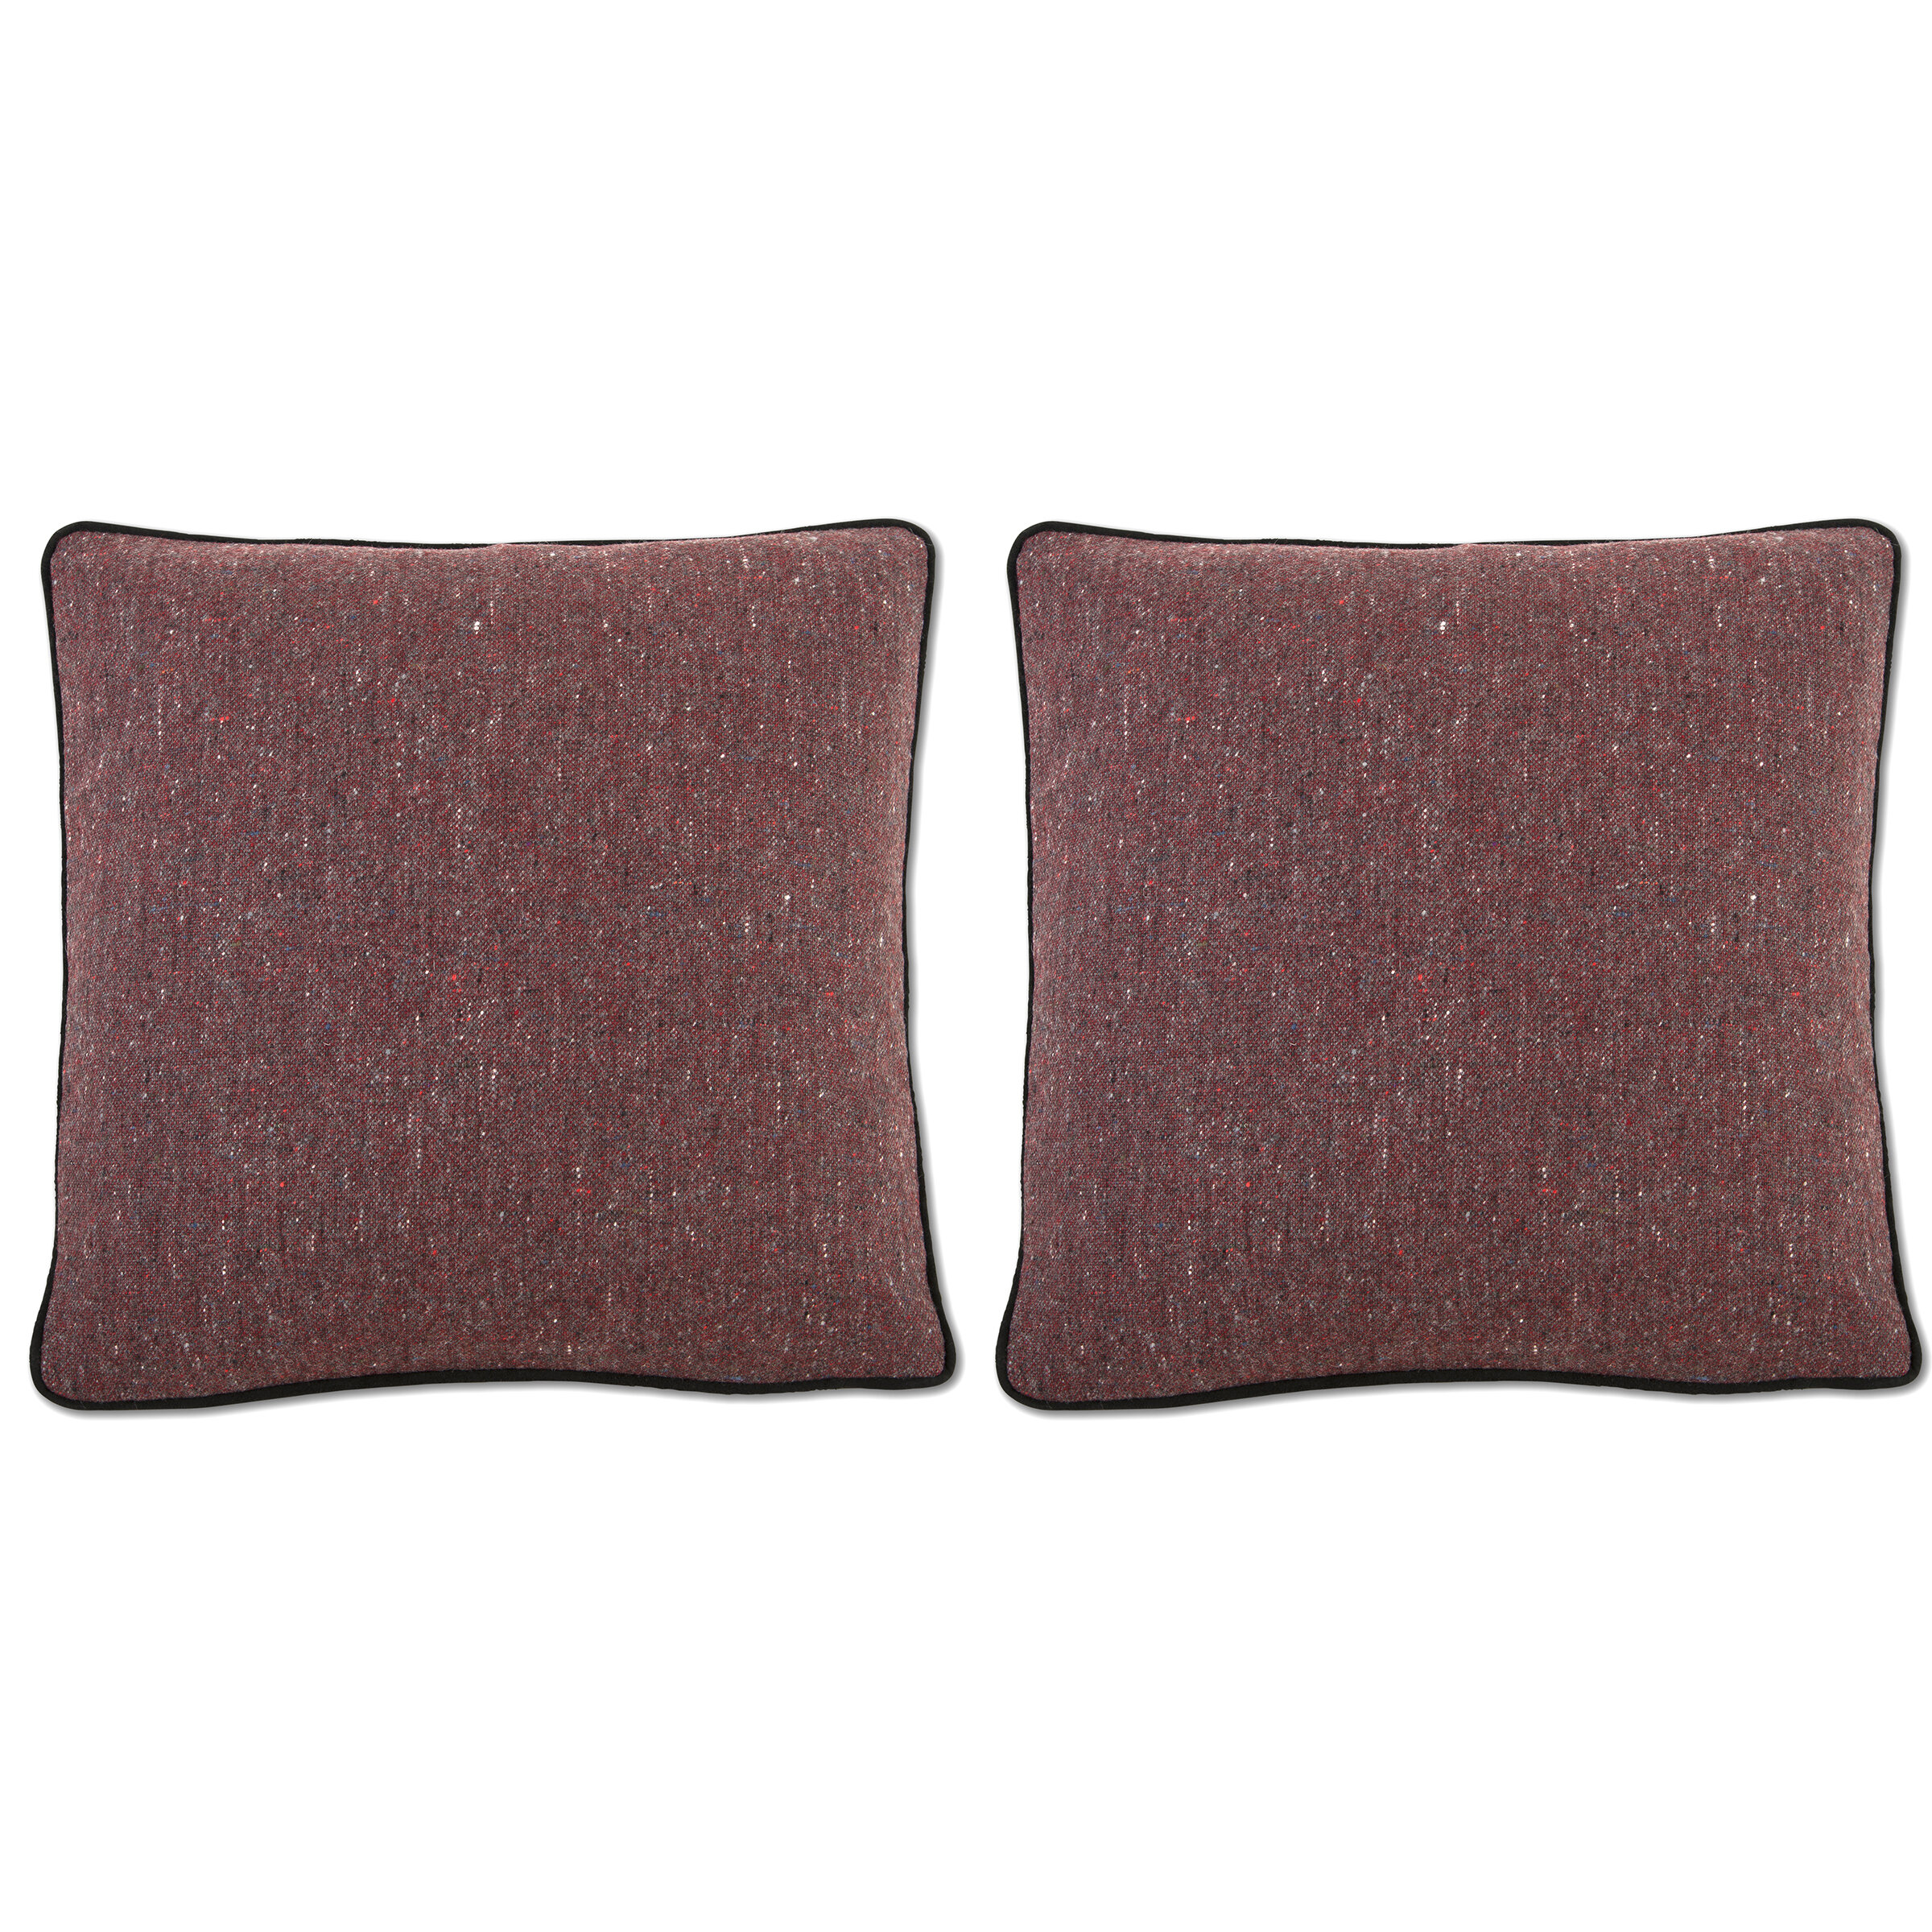 donegal tweed pillow covers red with black suede leather trim 22 inch dallas a saunders artisan textiles